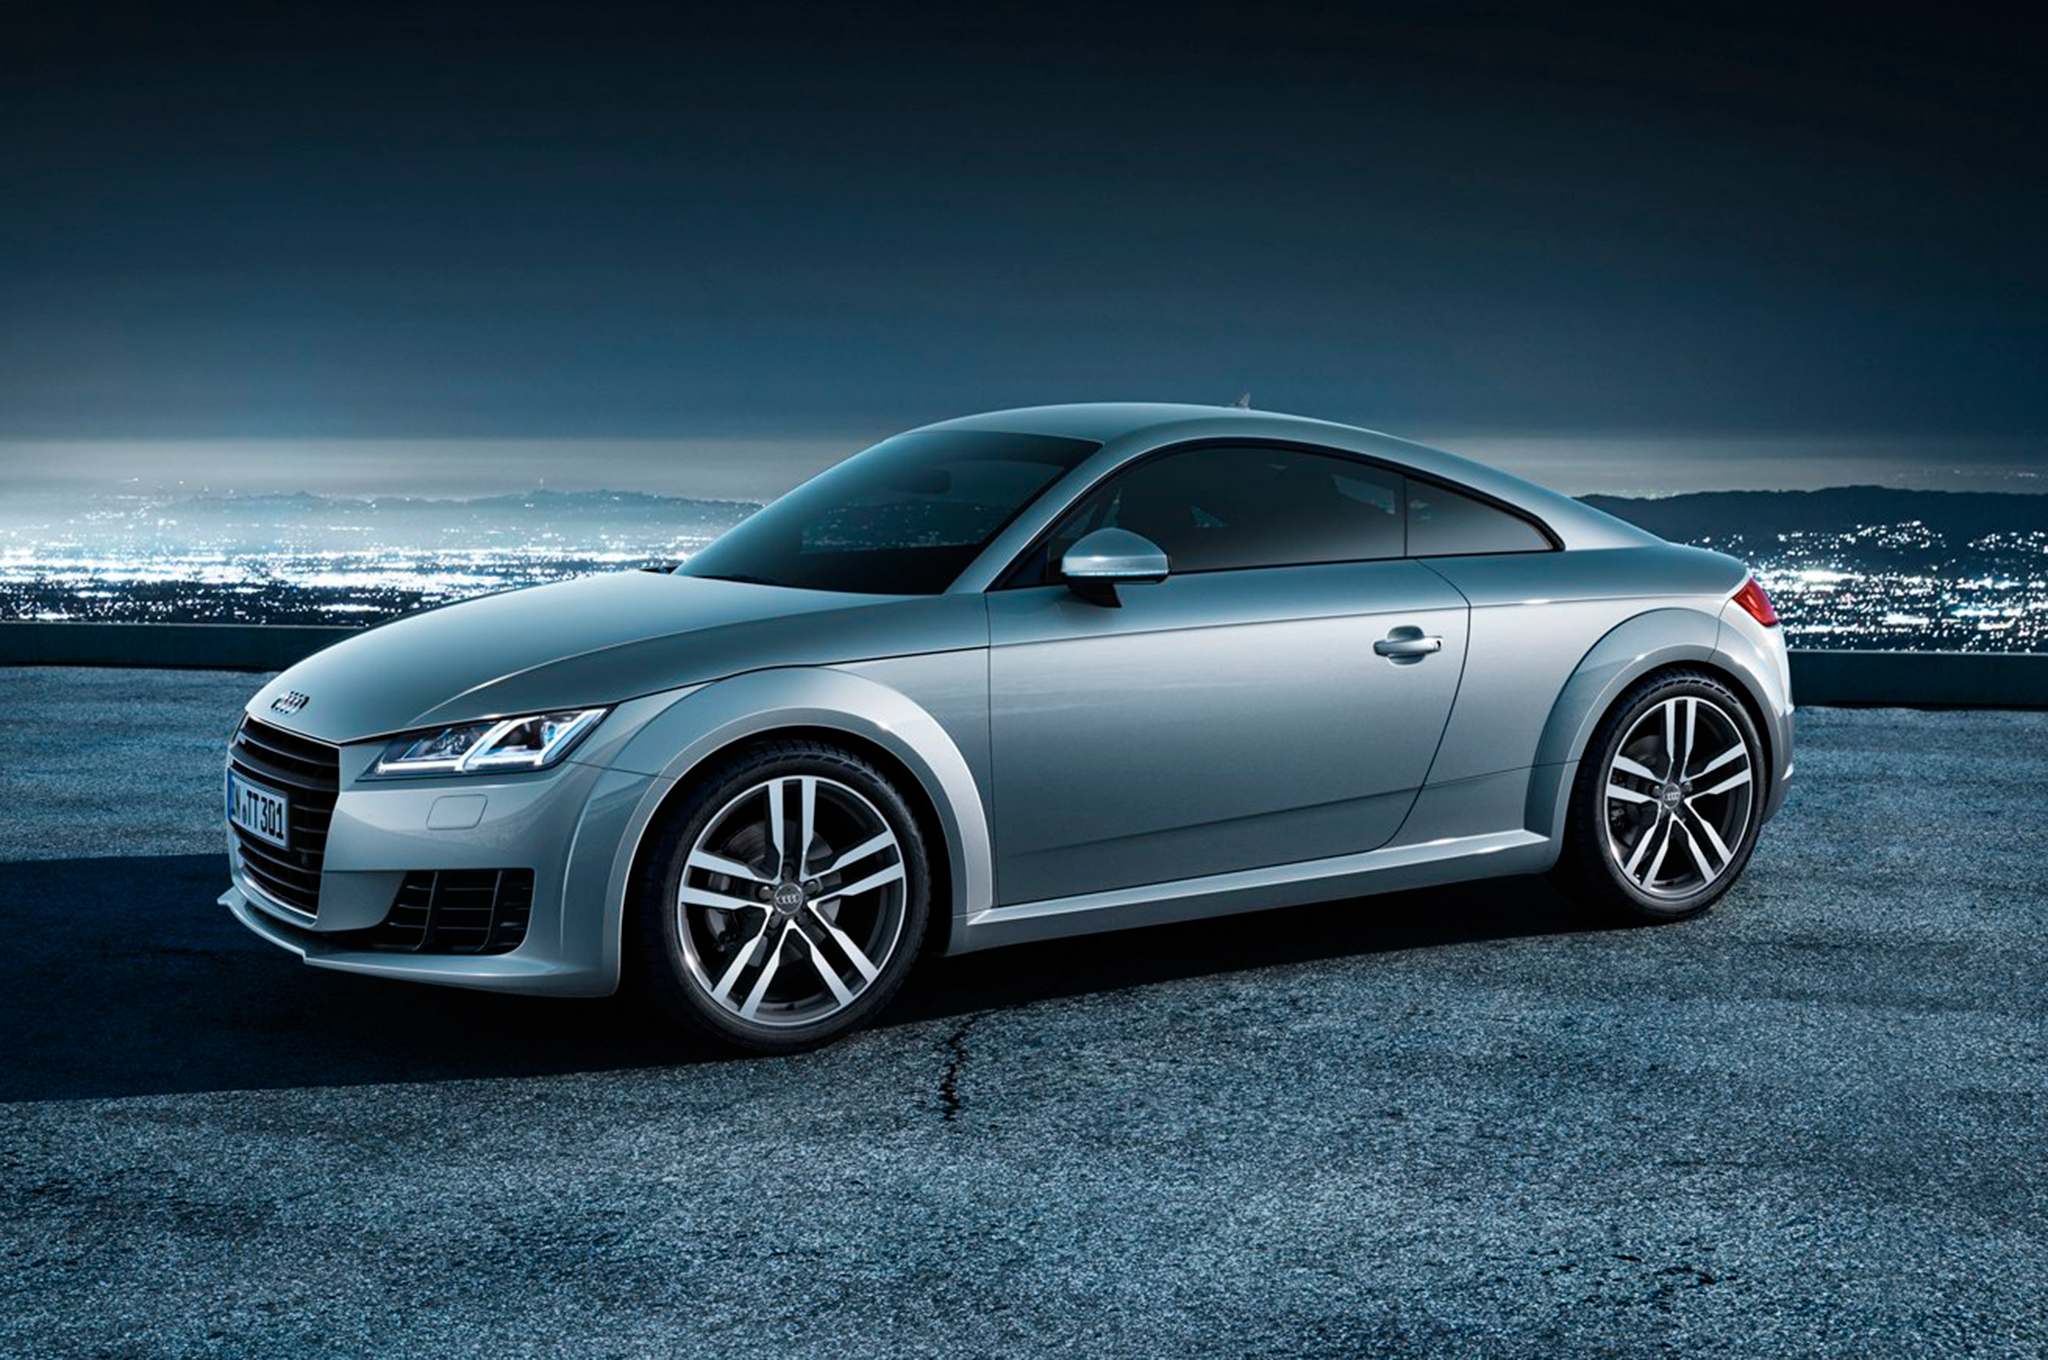 Audi TT Specifications, Price, Mileage, Pics, Review